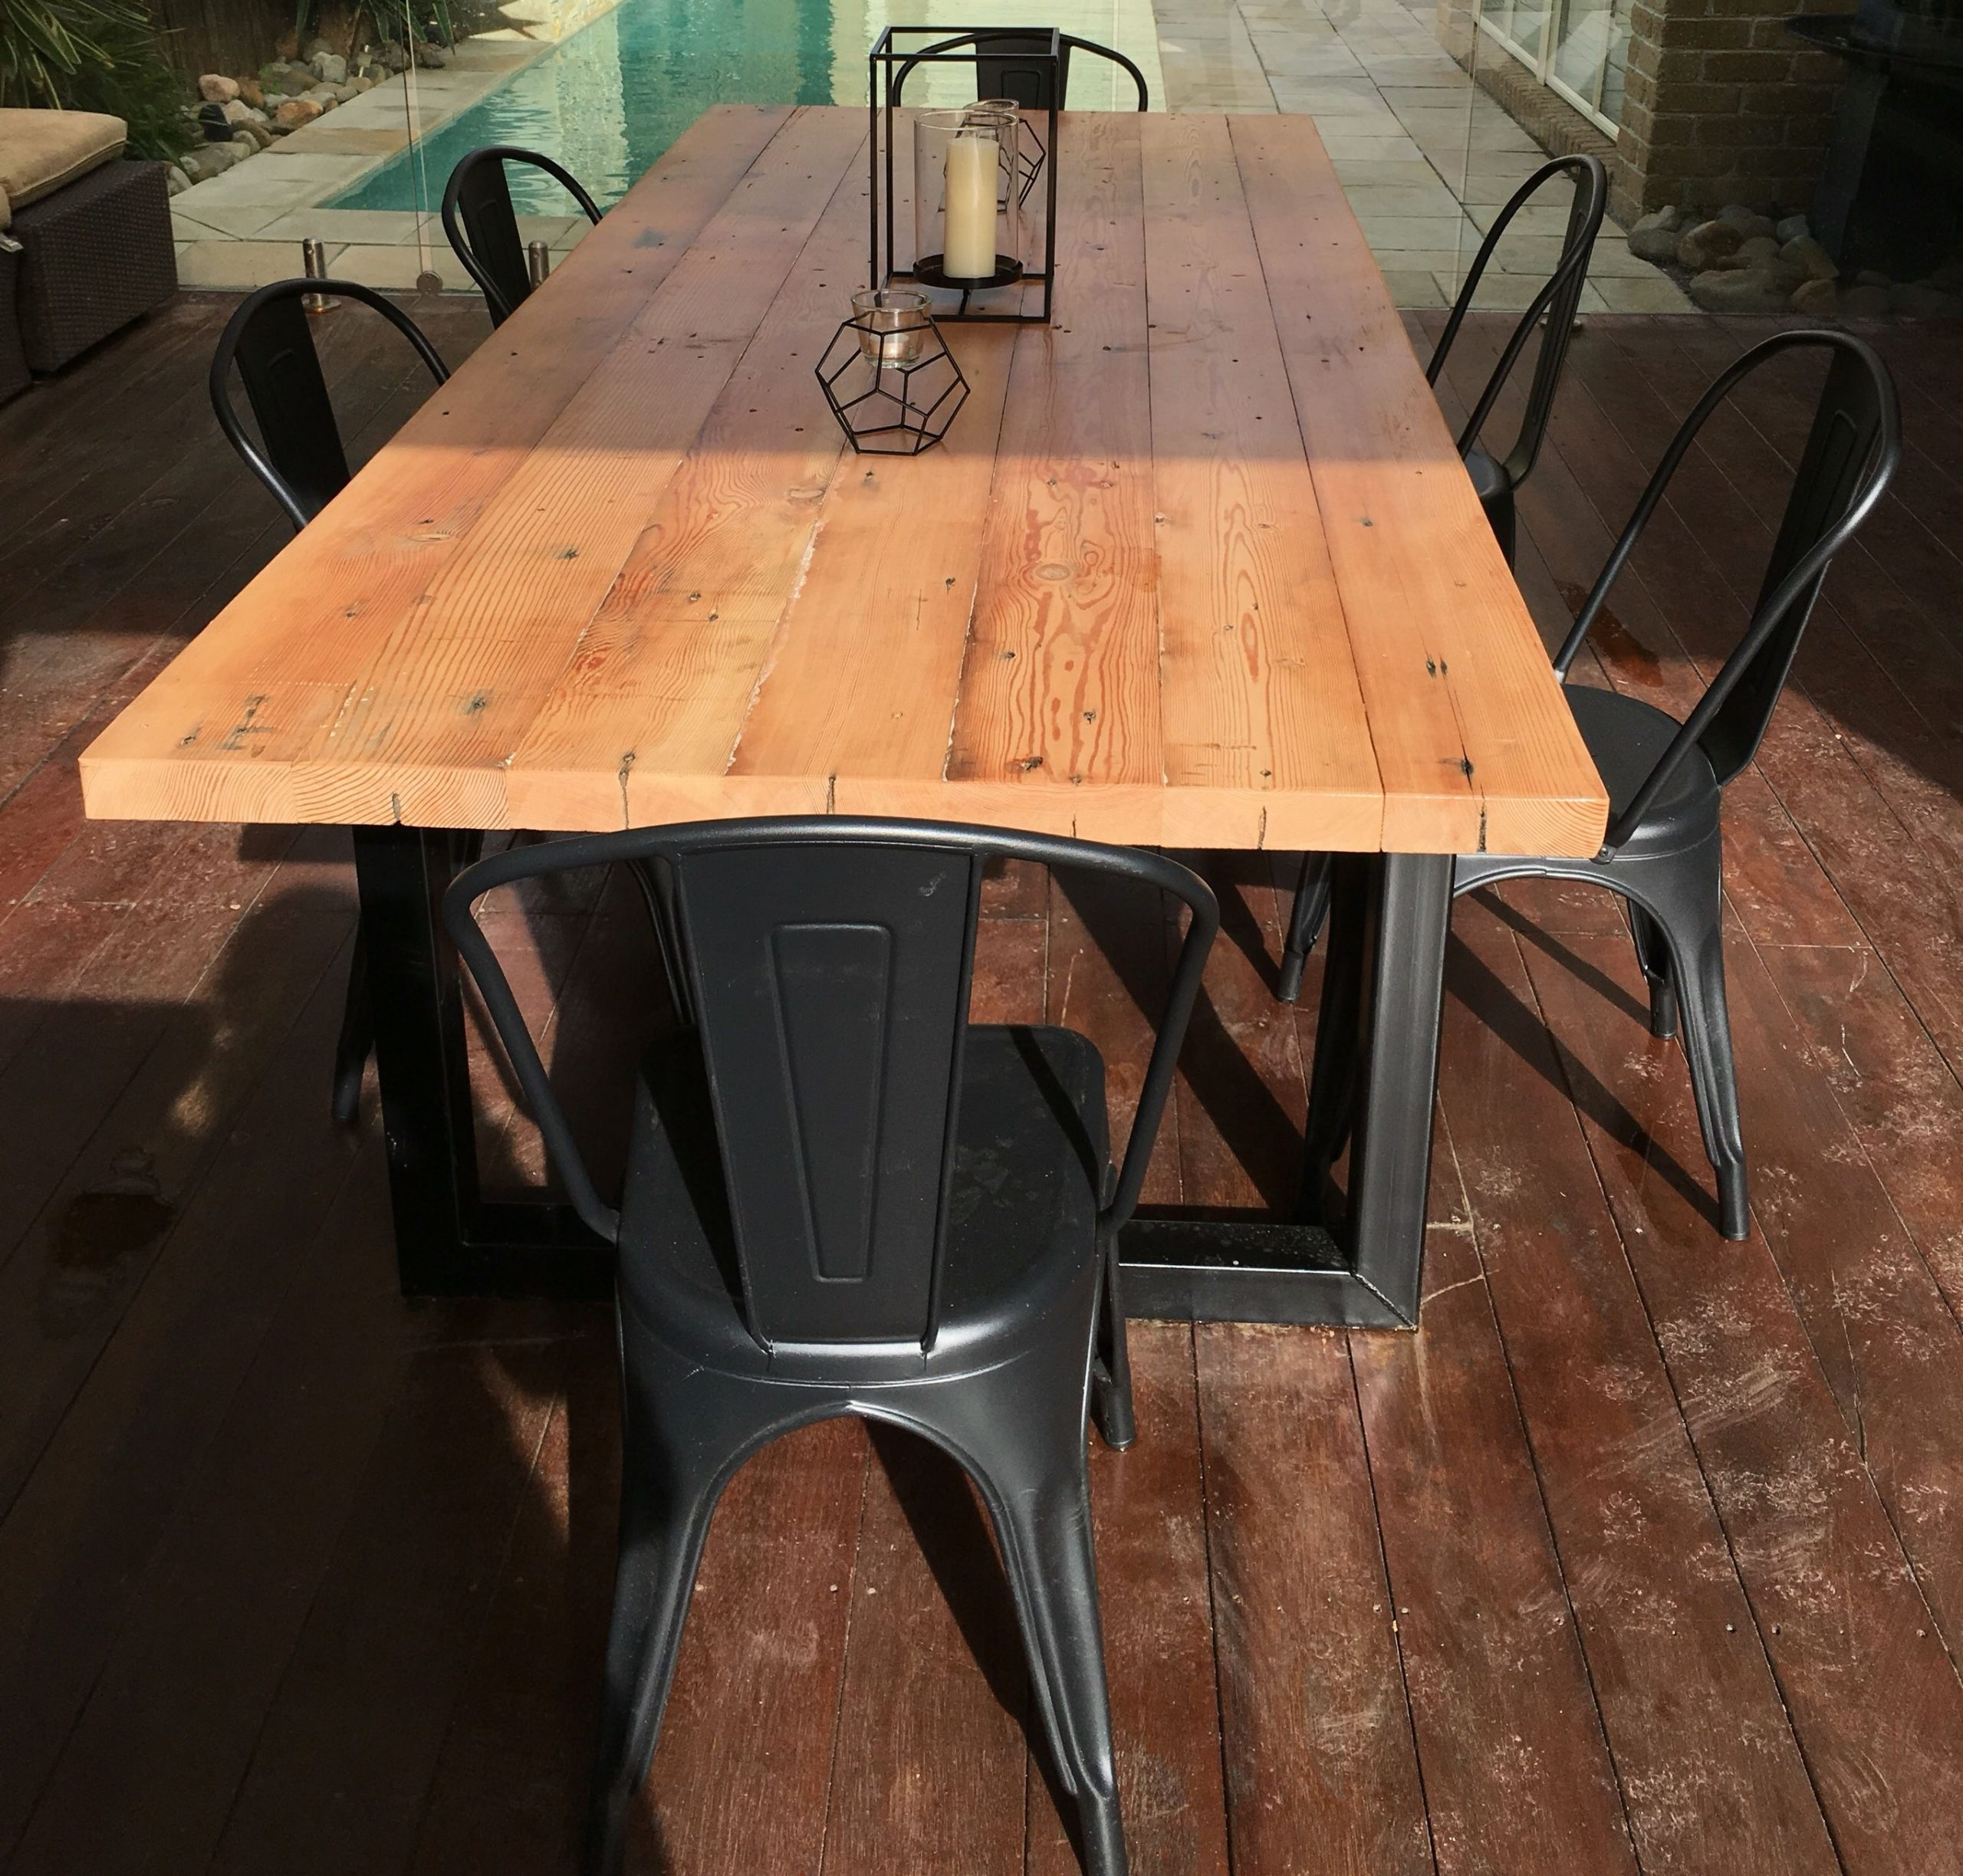 Recycled Oregon Industrial Dining Table Made intended for sizing 2730 X 2610